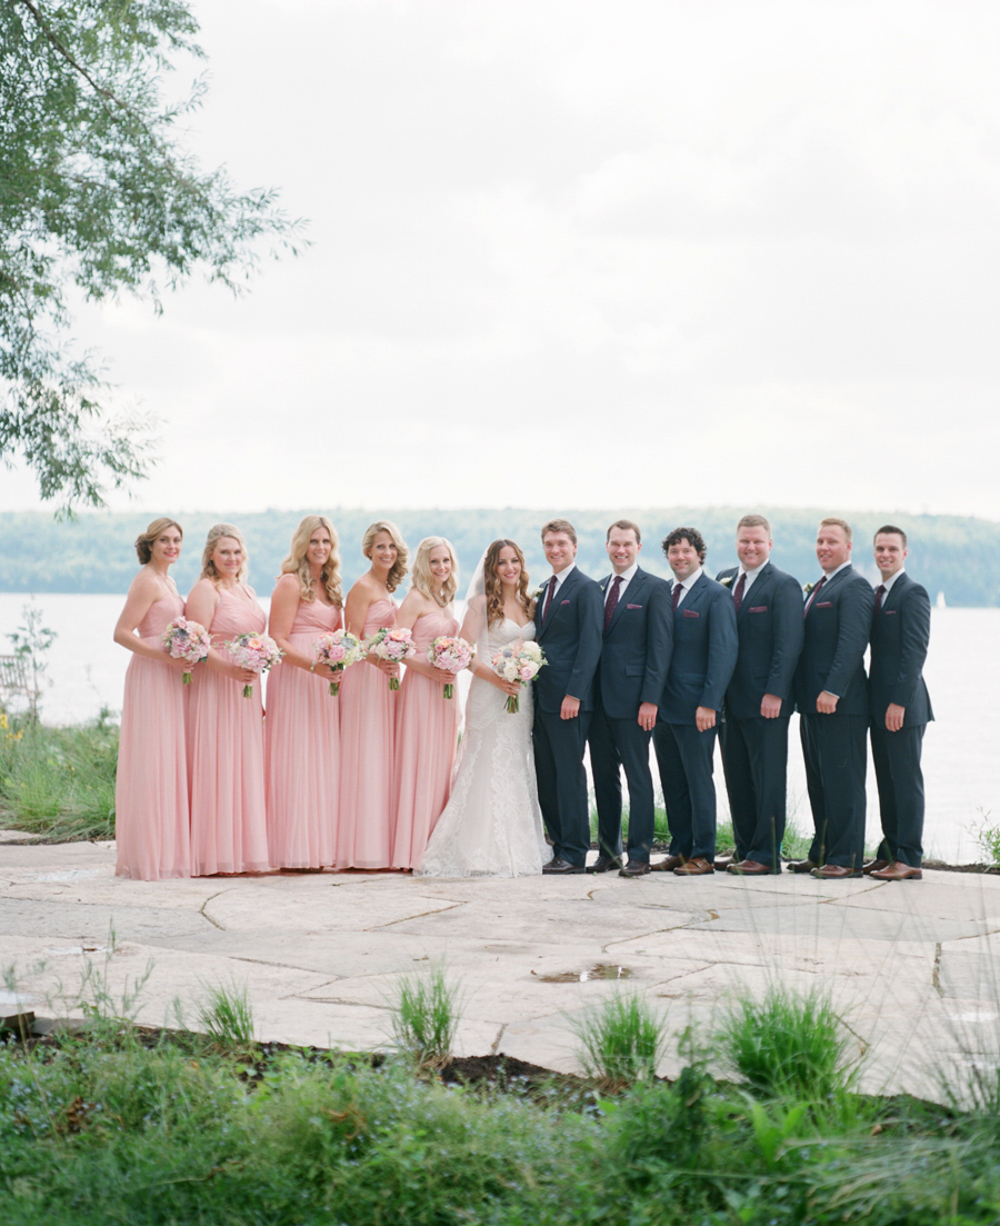 Horseshoe_Bay_Farms_Egg_Harbor_Wedding019.jpg